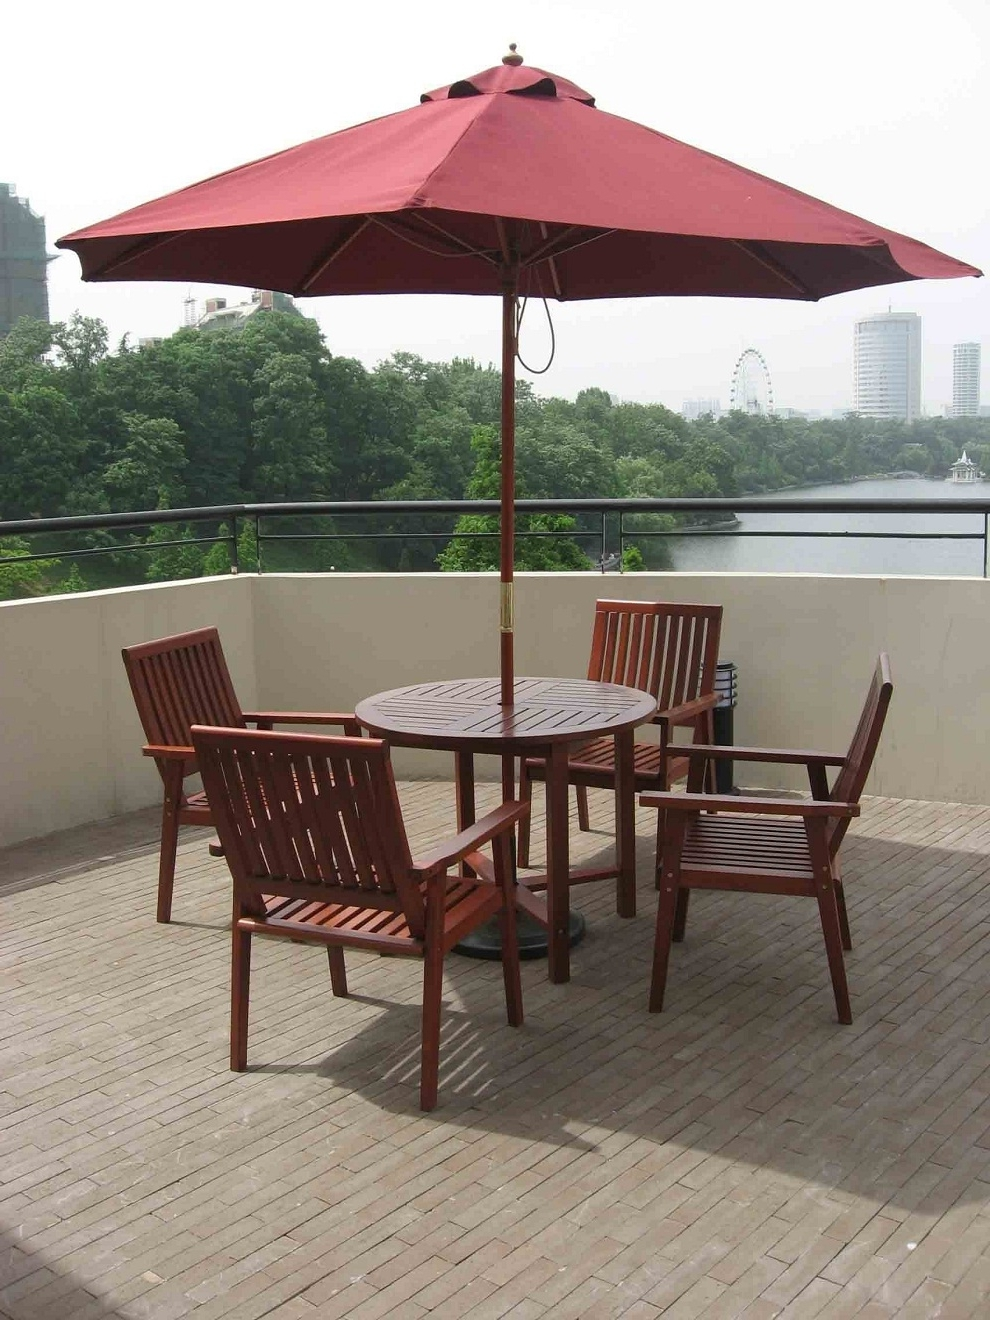 Fashionable Patio Surprising Table With Umbrella Small Tables For Rent In Los Within Patio Umbrellas For Rent (View 19 of 20)